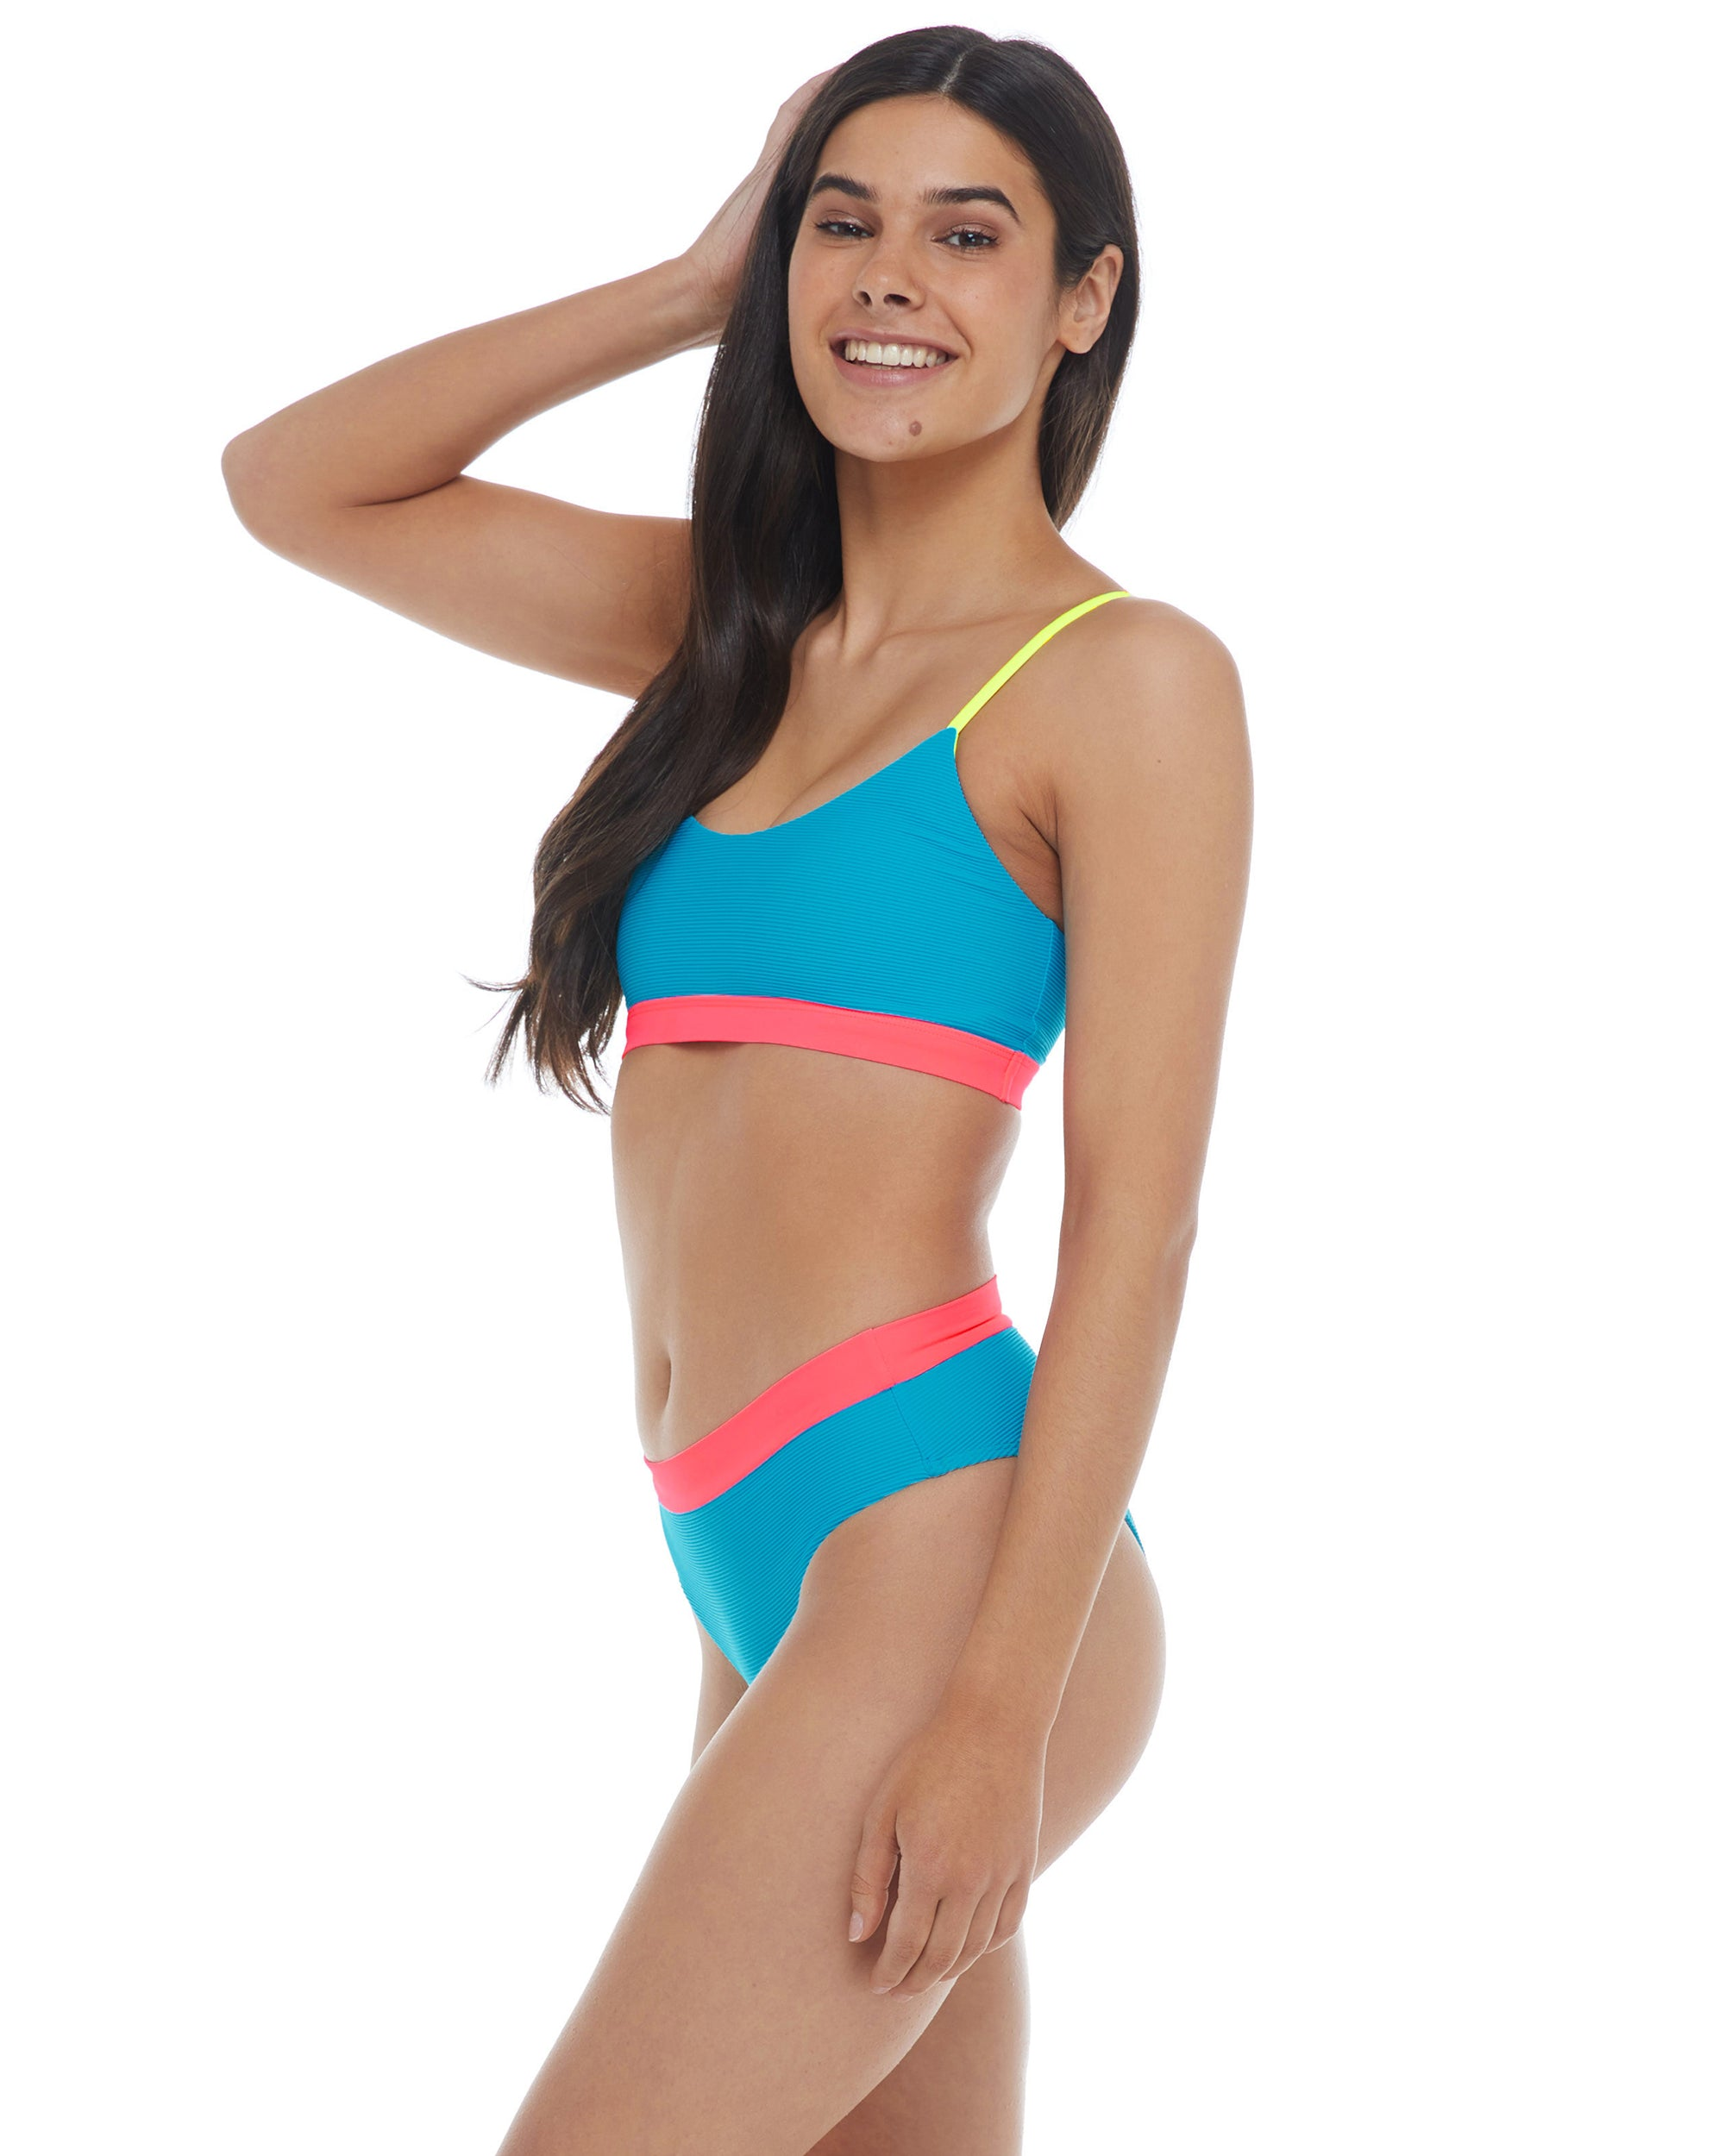 Spectrum Aro Scoop Bikini Top - Multi